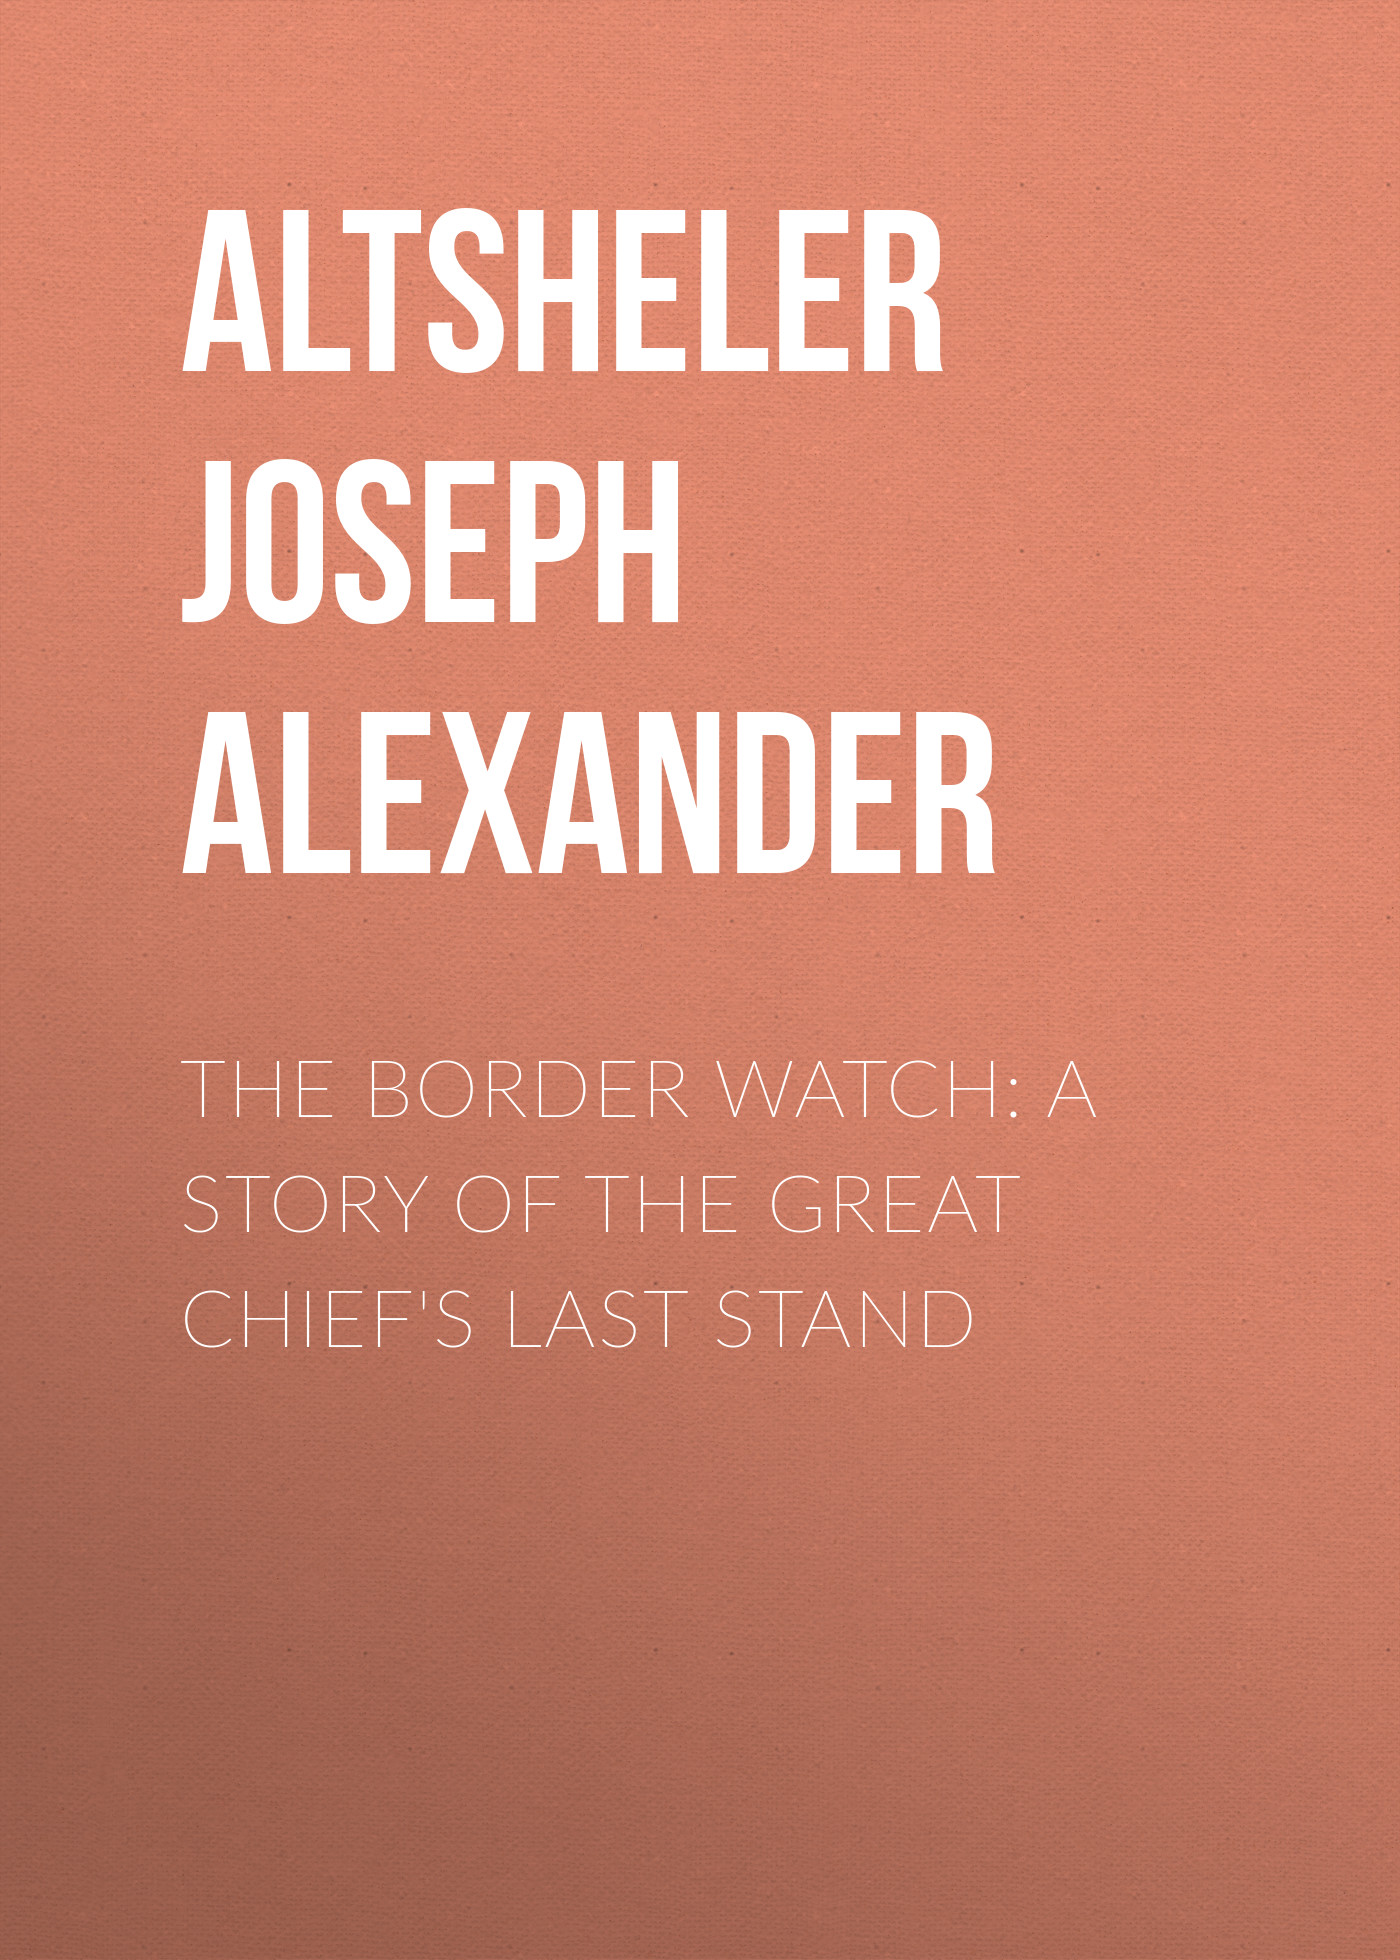 Altsheler Joseph Alexander The Border Watch: A Story of the Great Chief's Last Stand alexander the great